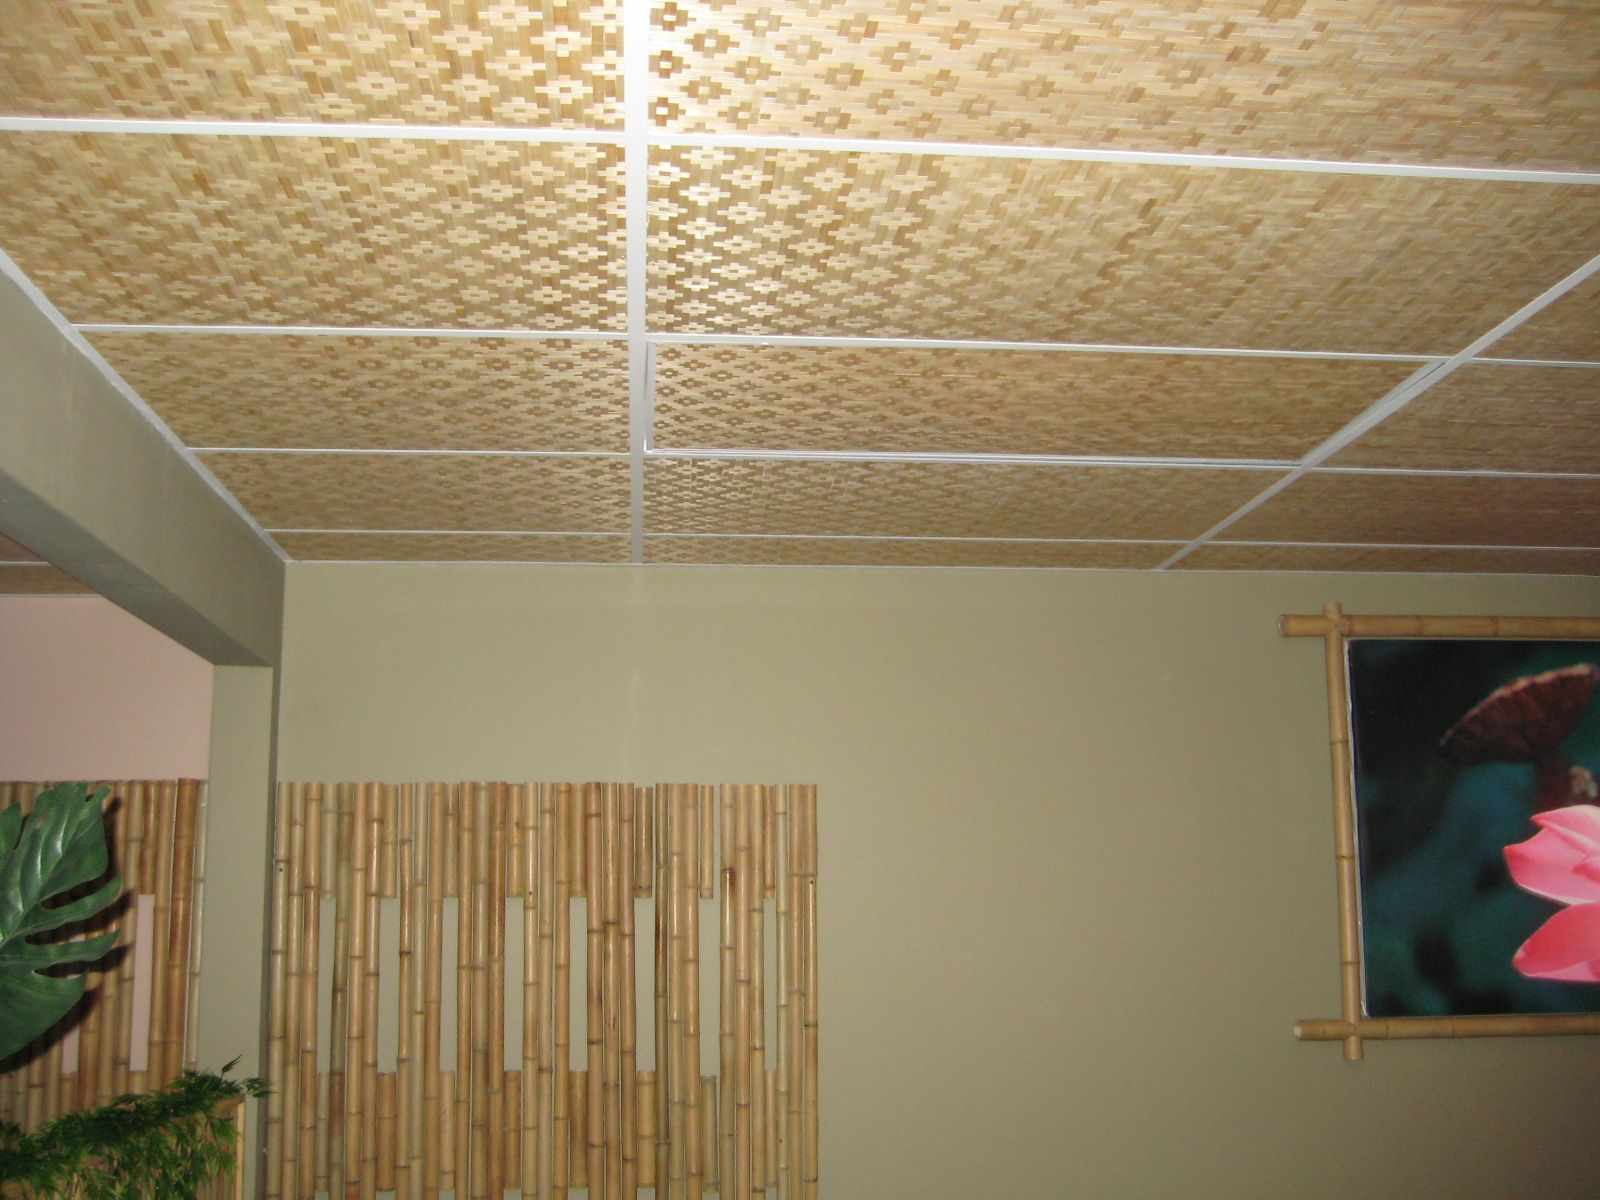 Woven thatch ceilings bamboo matting for ceiling tiles jwc woven thatch ceilings bamboo matting for ceiling tiles dailygadgetfo Choice Image